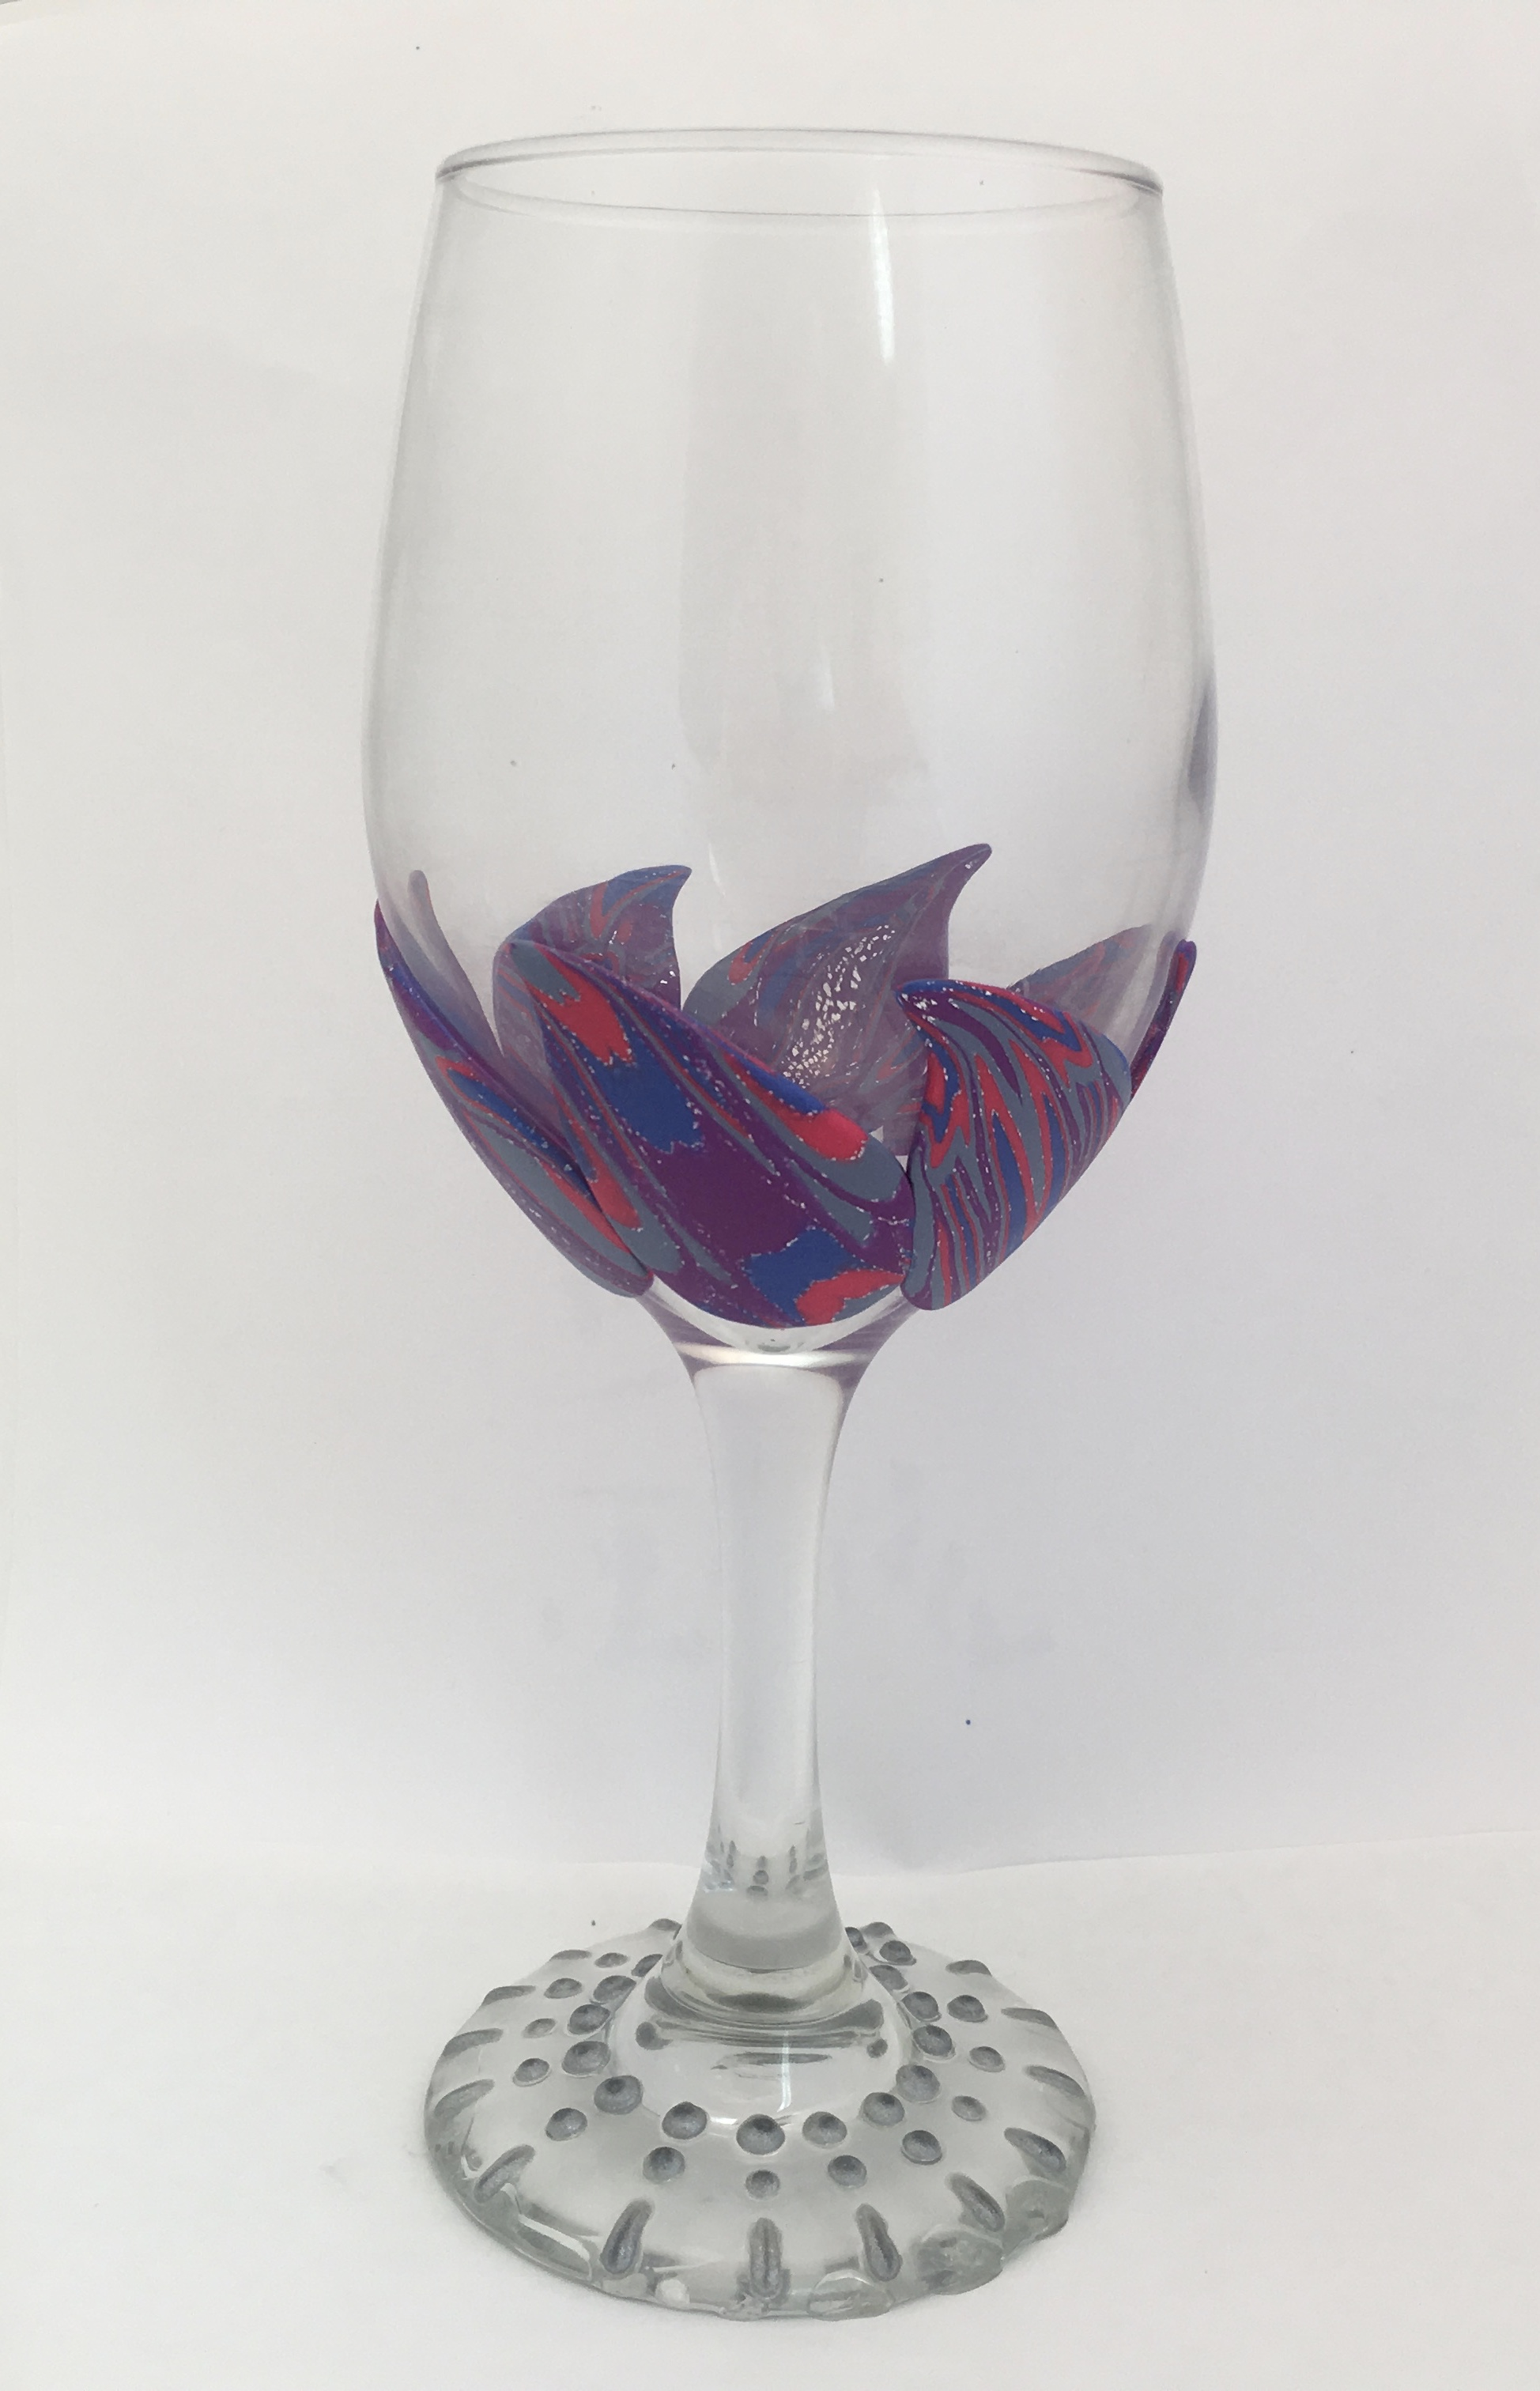 add clay slices to wine glass